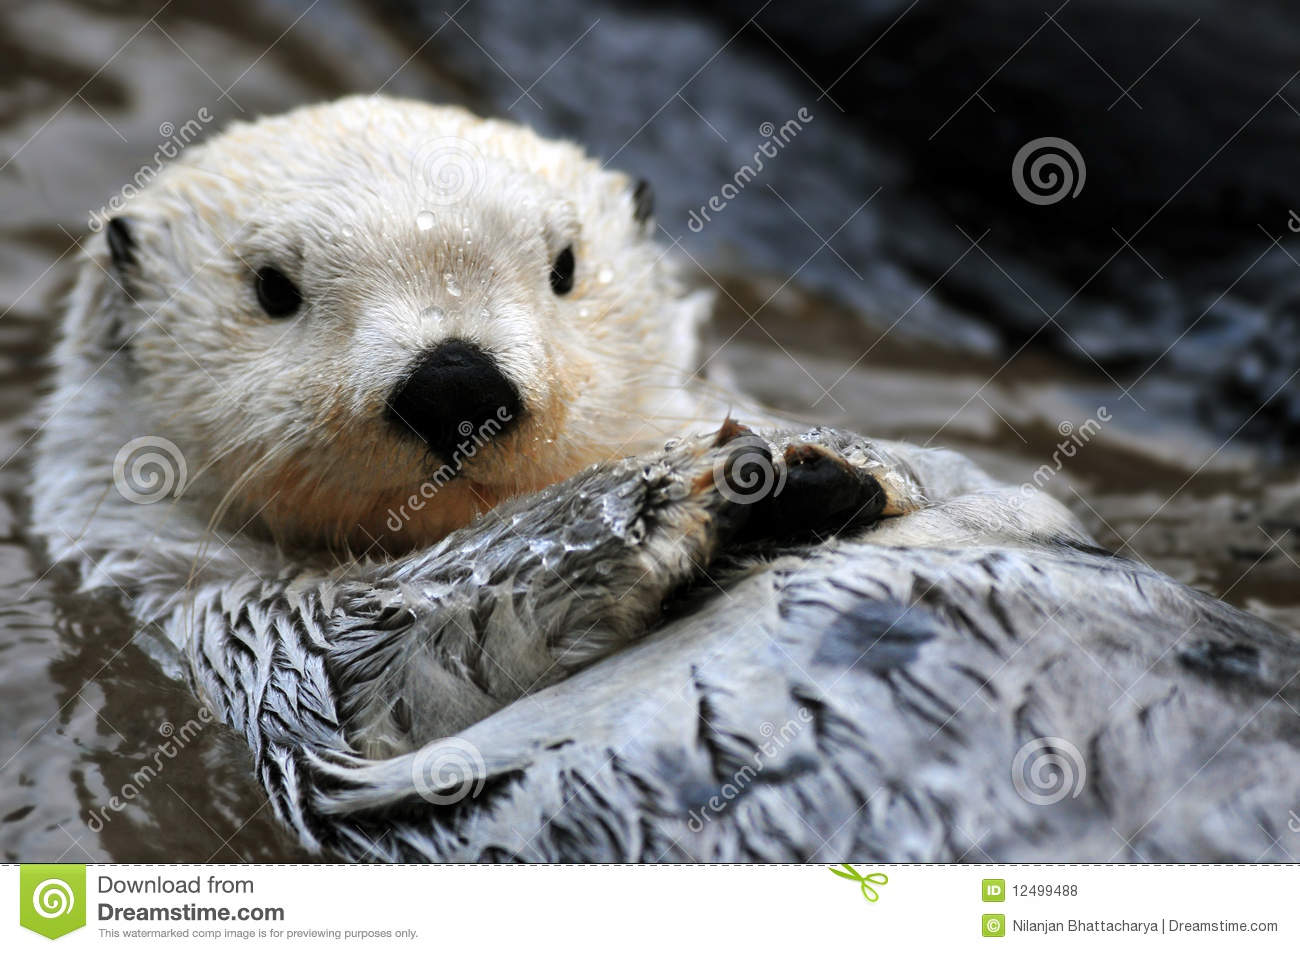 Cute Small Couple Wallpaper Hd White Sea Otter Royalty Free Stock Photos Image 12499488